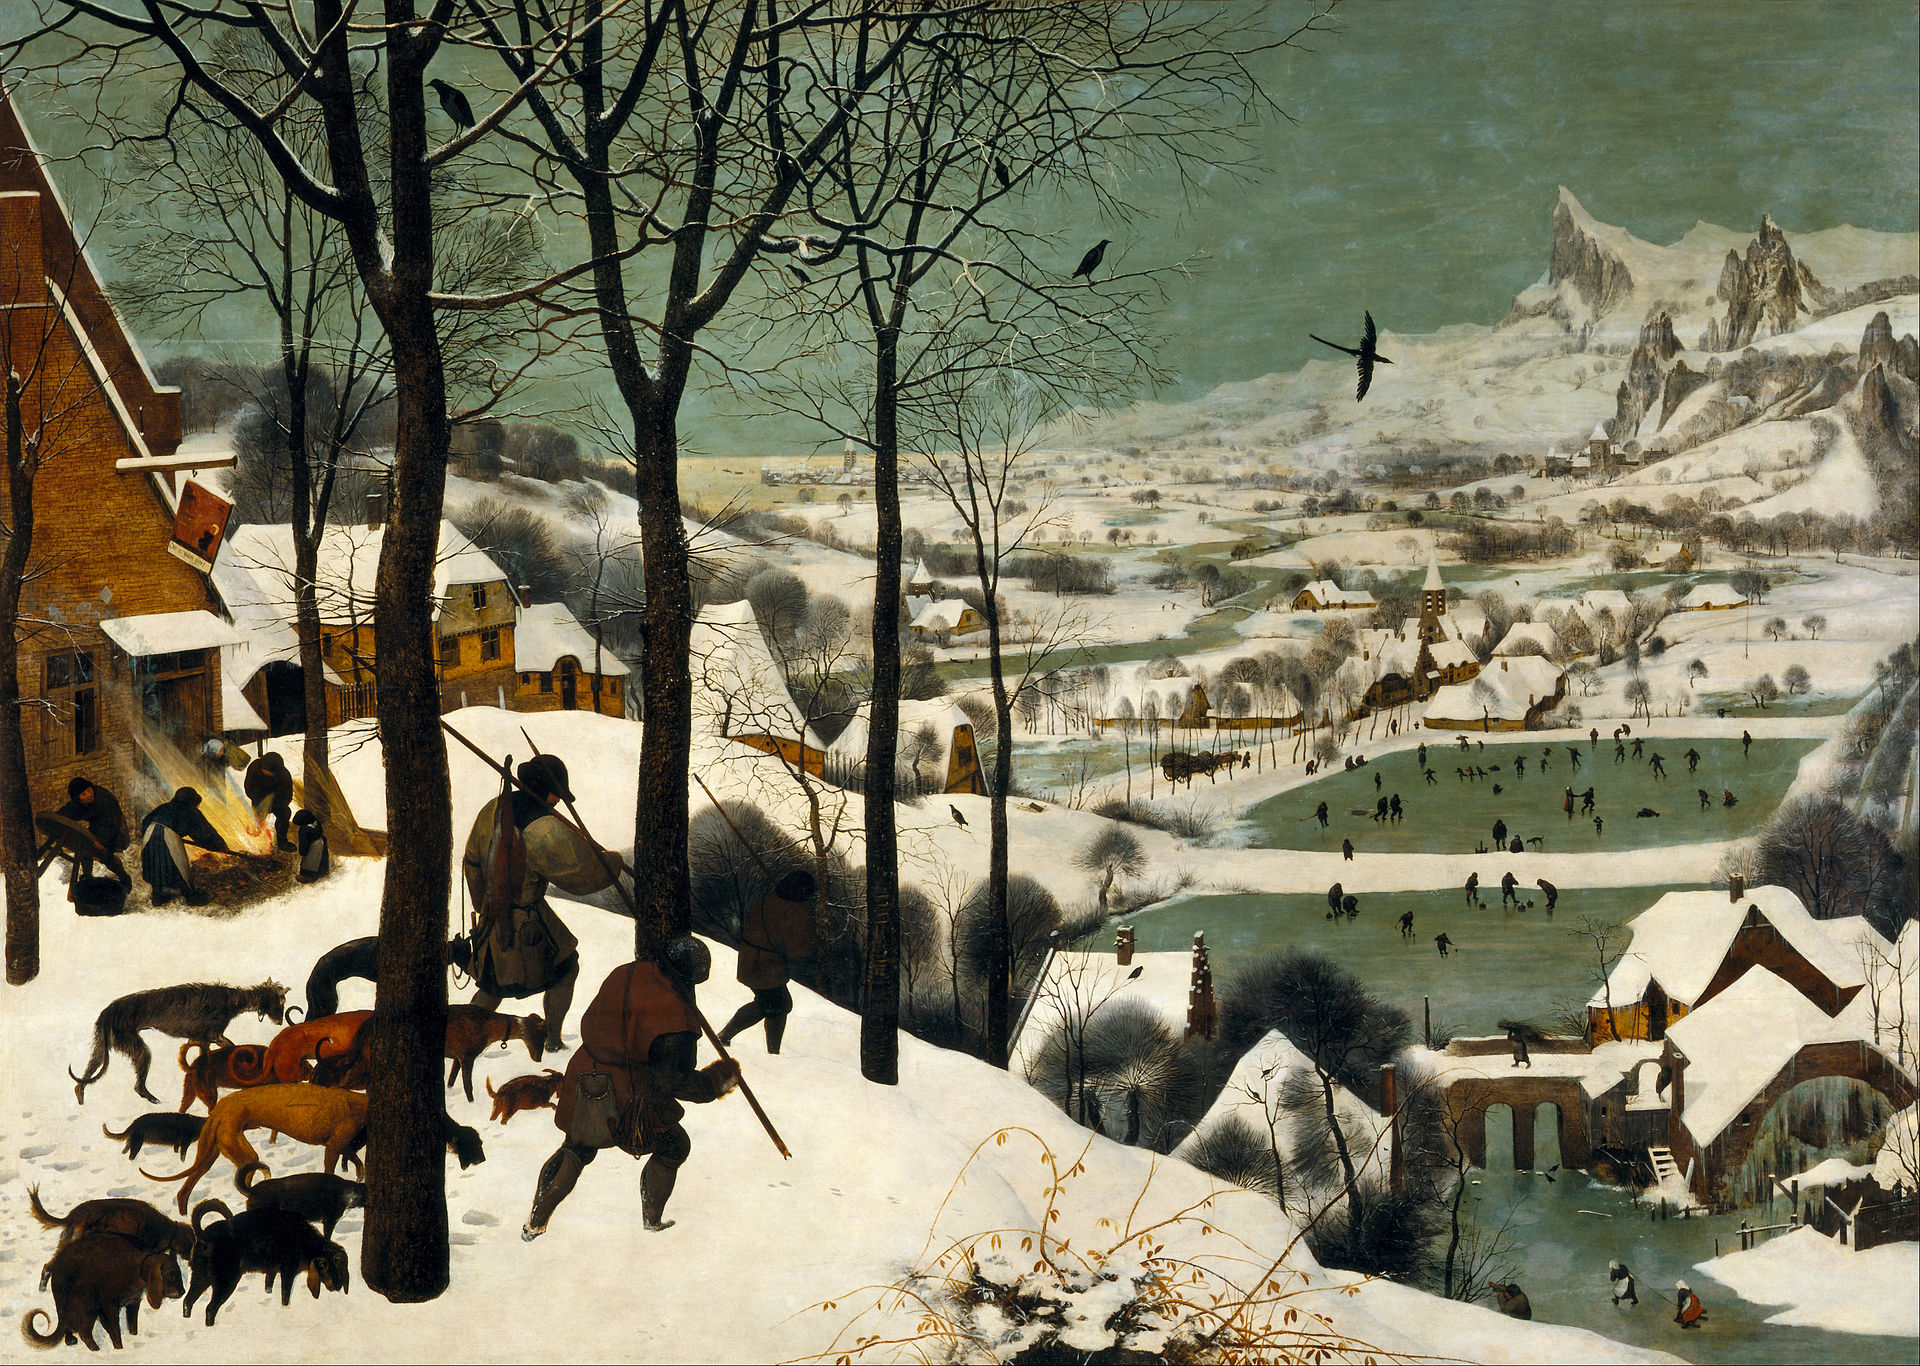 Pieter Bruegel the Elder: Hunters in the Snow, circa 1564